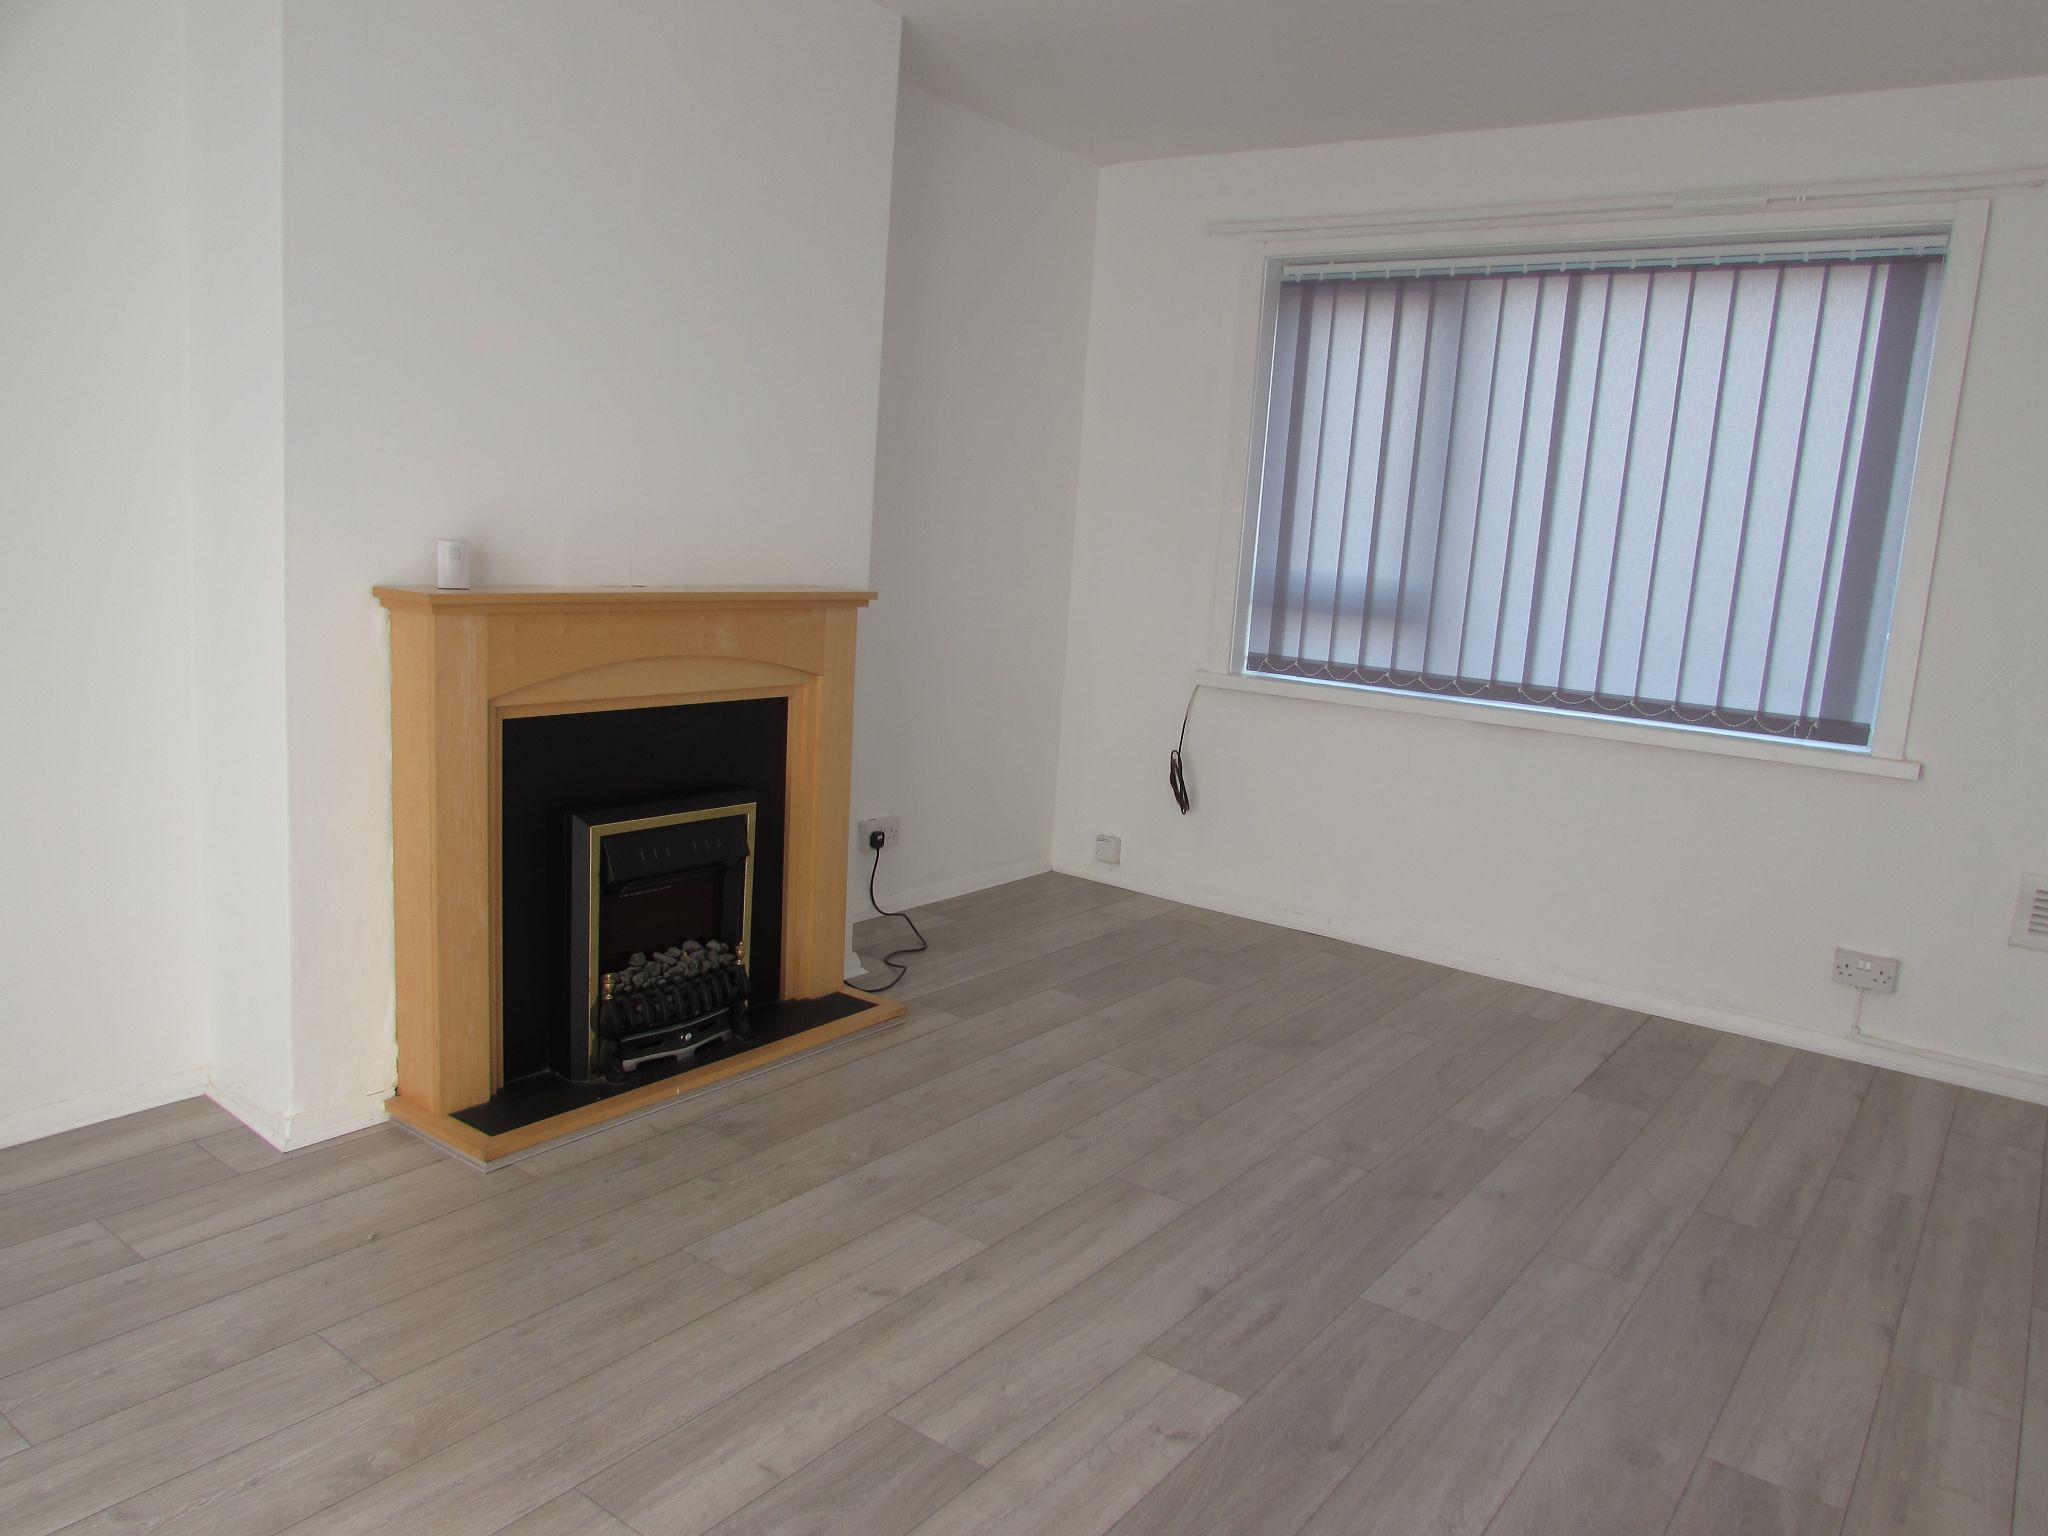 2 Bedroom Ground Floor Flat/apartment To Rent - Photograph 2